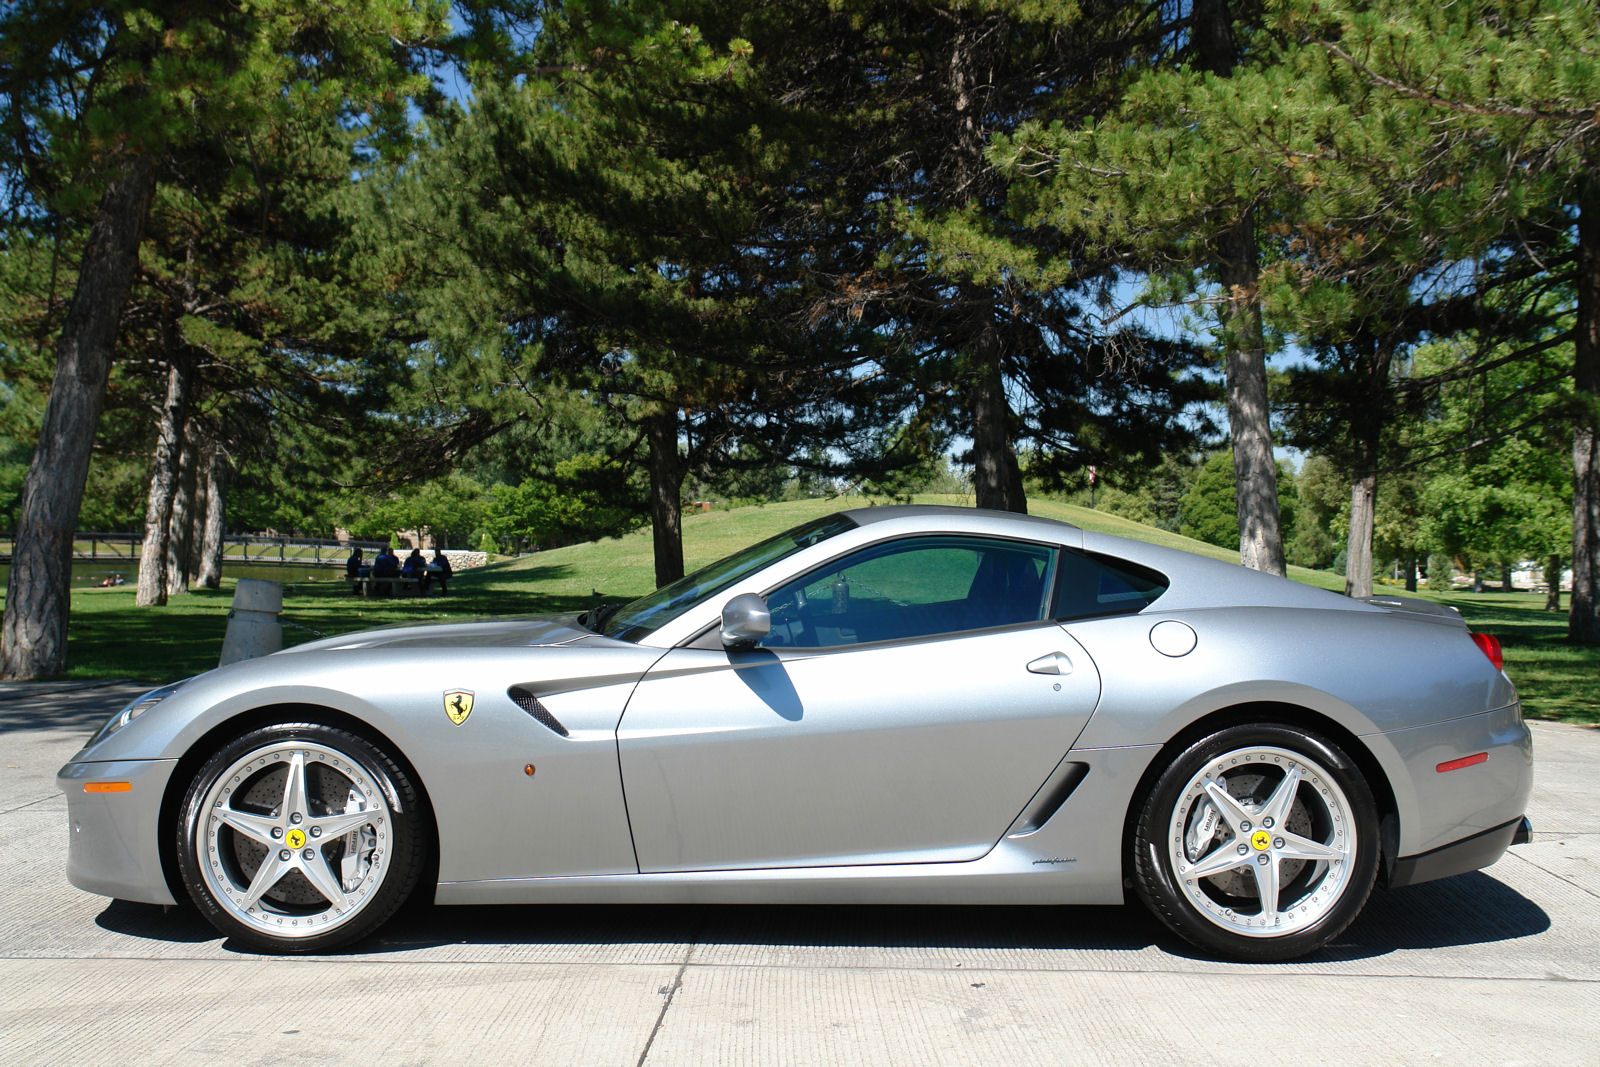 Ferrari for sale wallpaper downloads High resolution images for 1600x1067